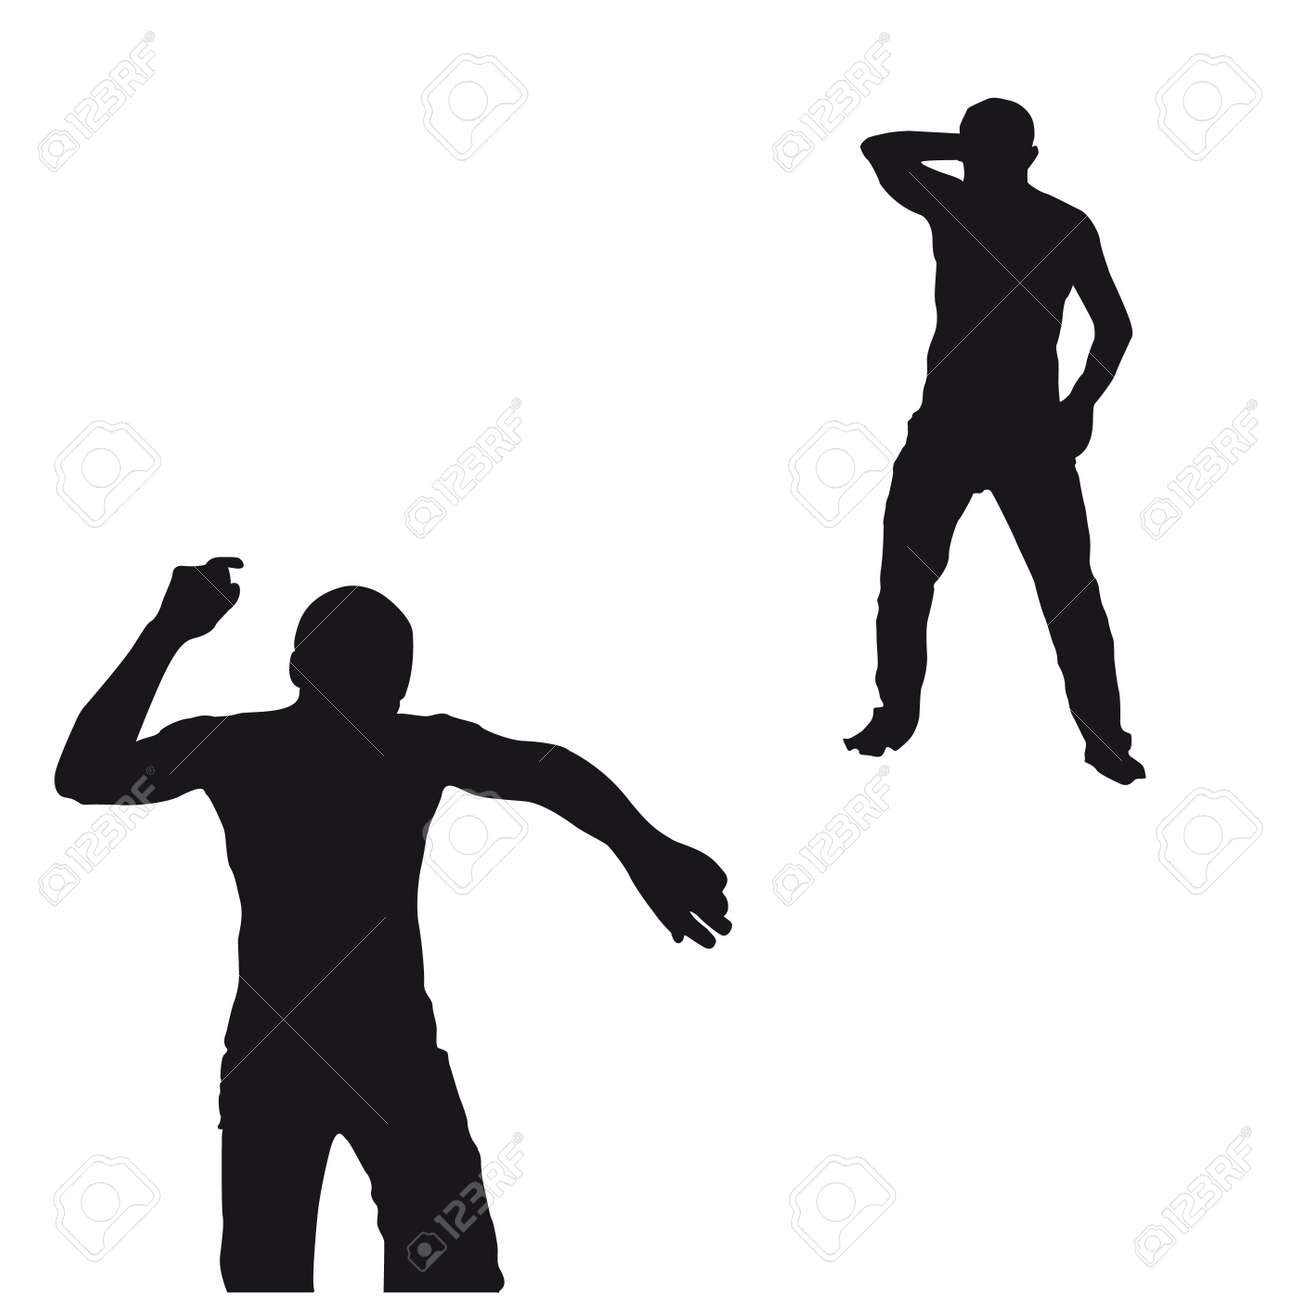 Two black men dancing silhouette on white background Stock Vector - 15603016